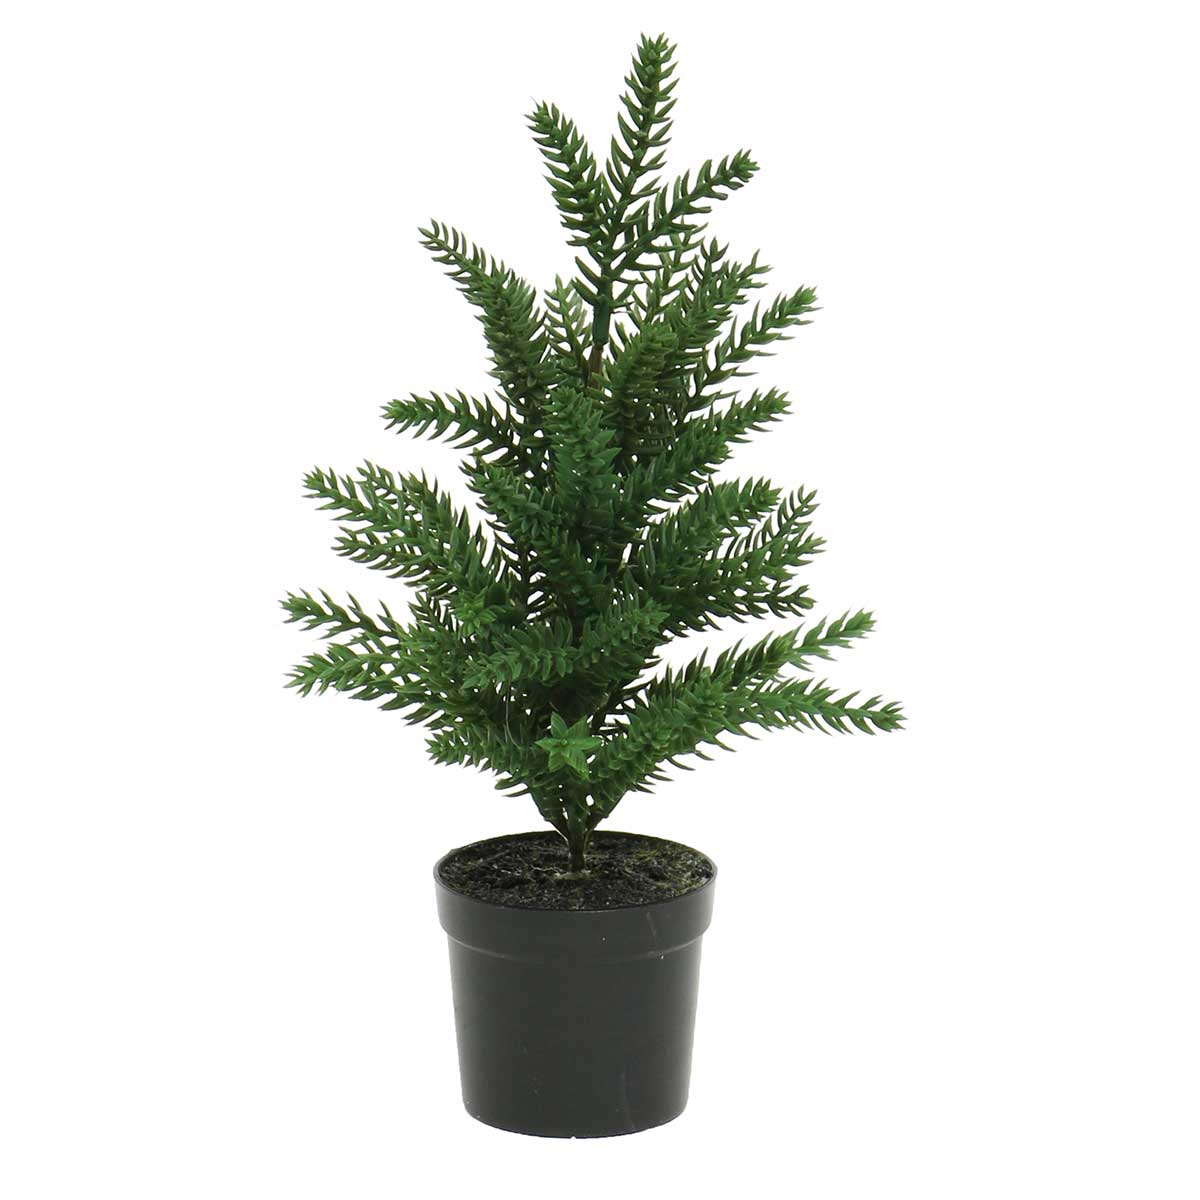 SPRUCE TREE IN BLACK